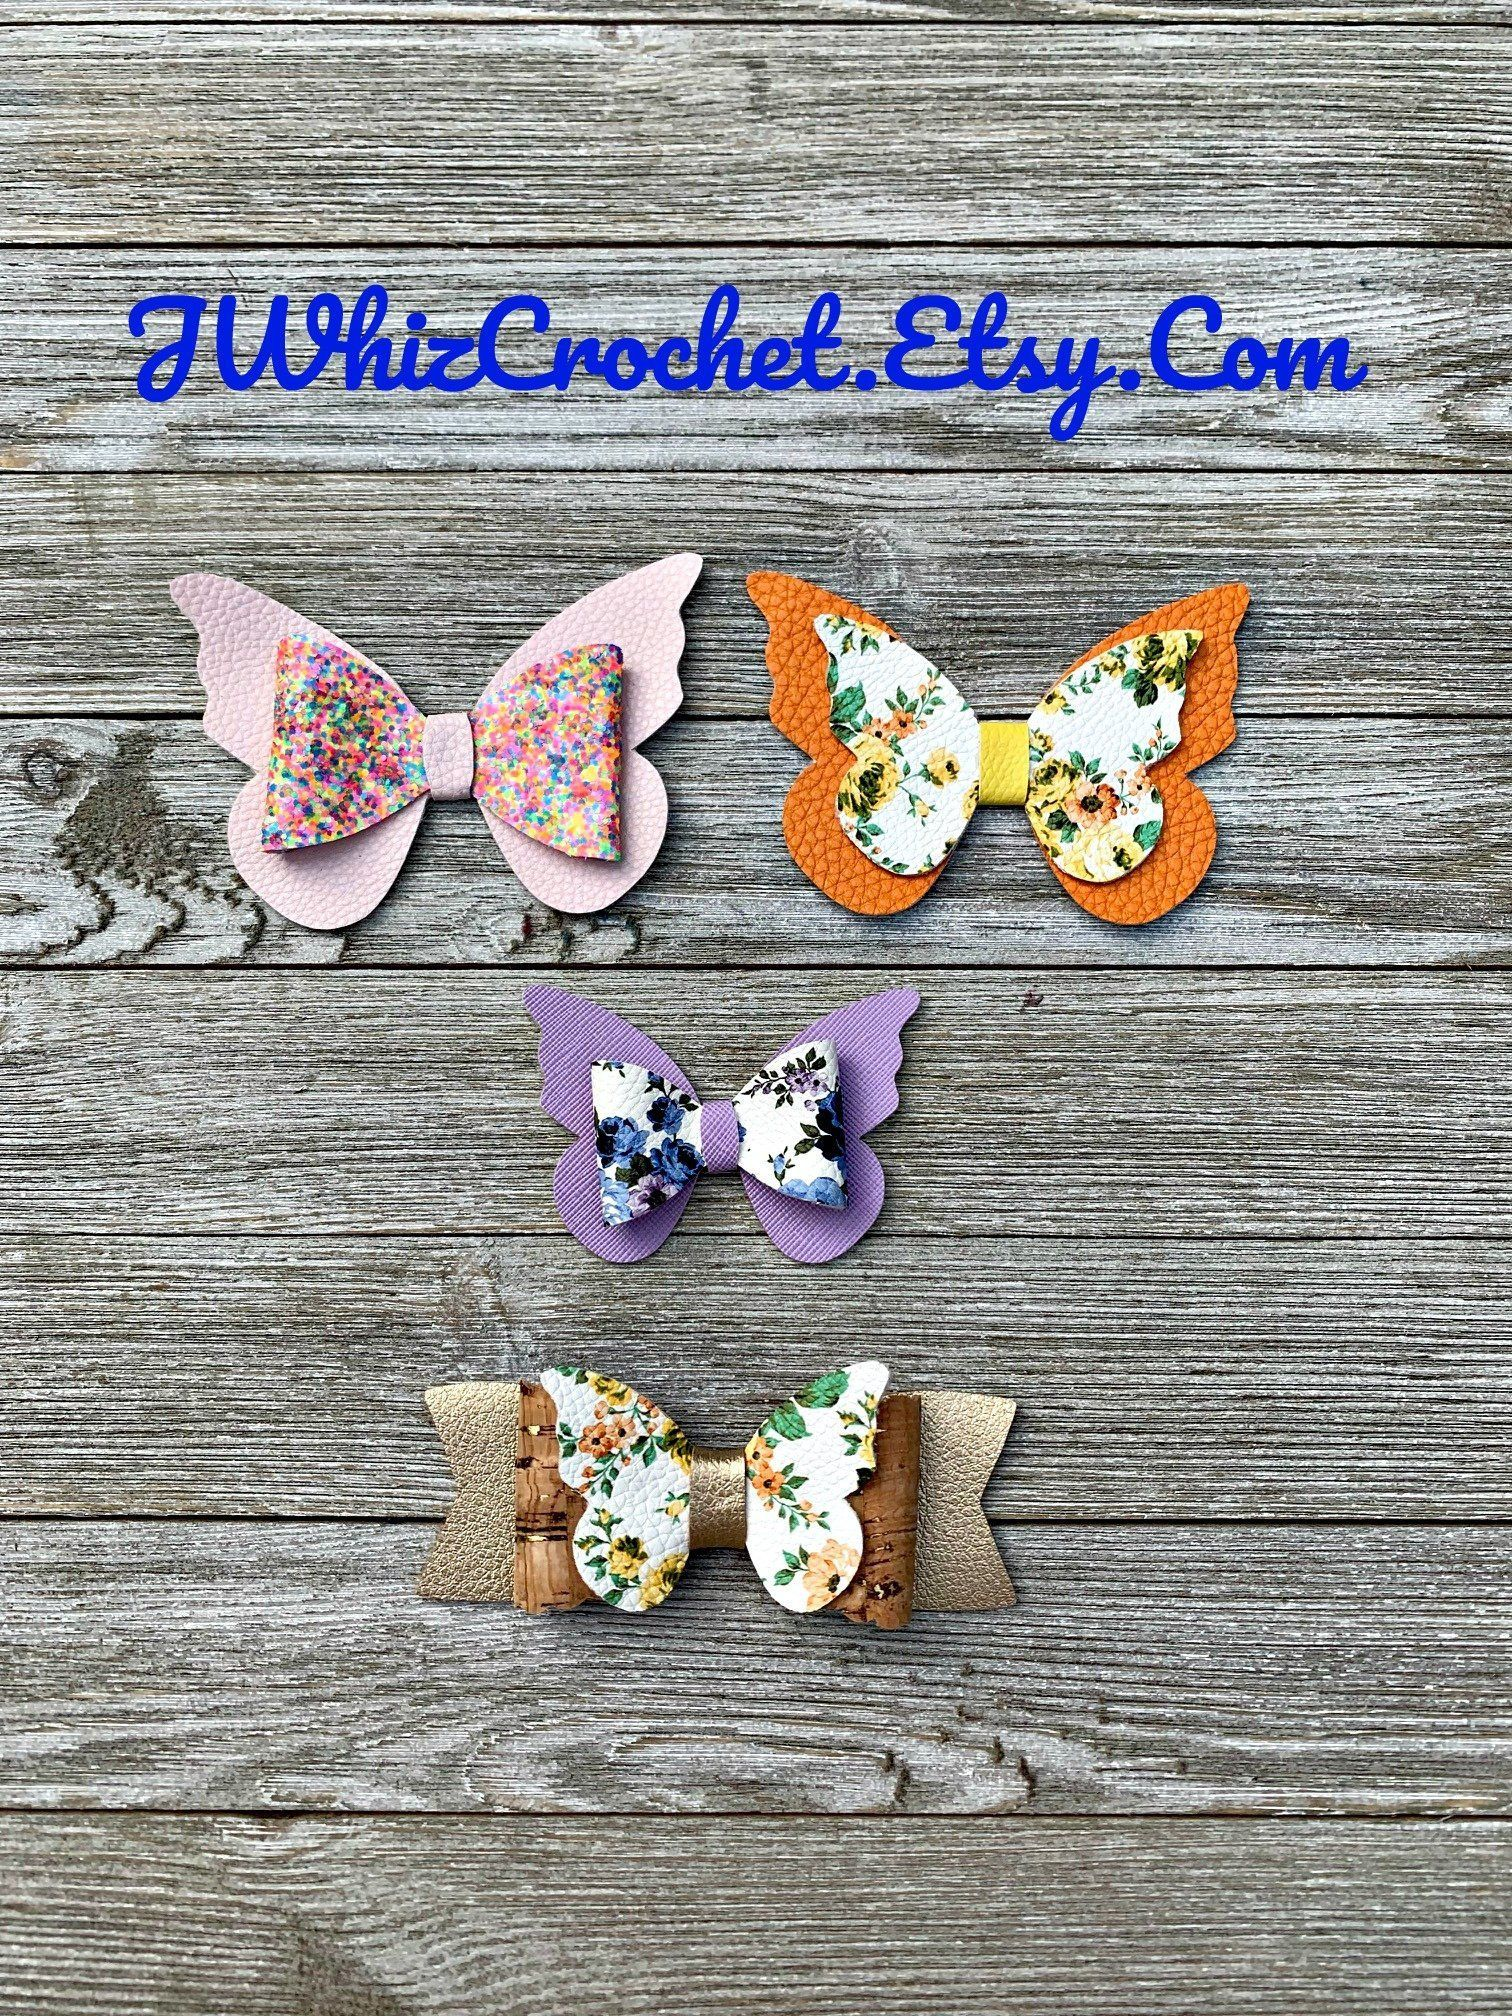 Butterflys and bows